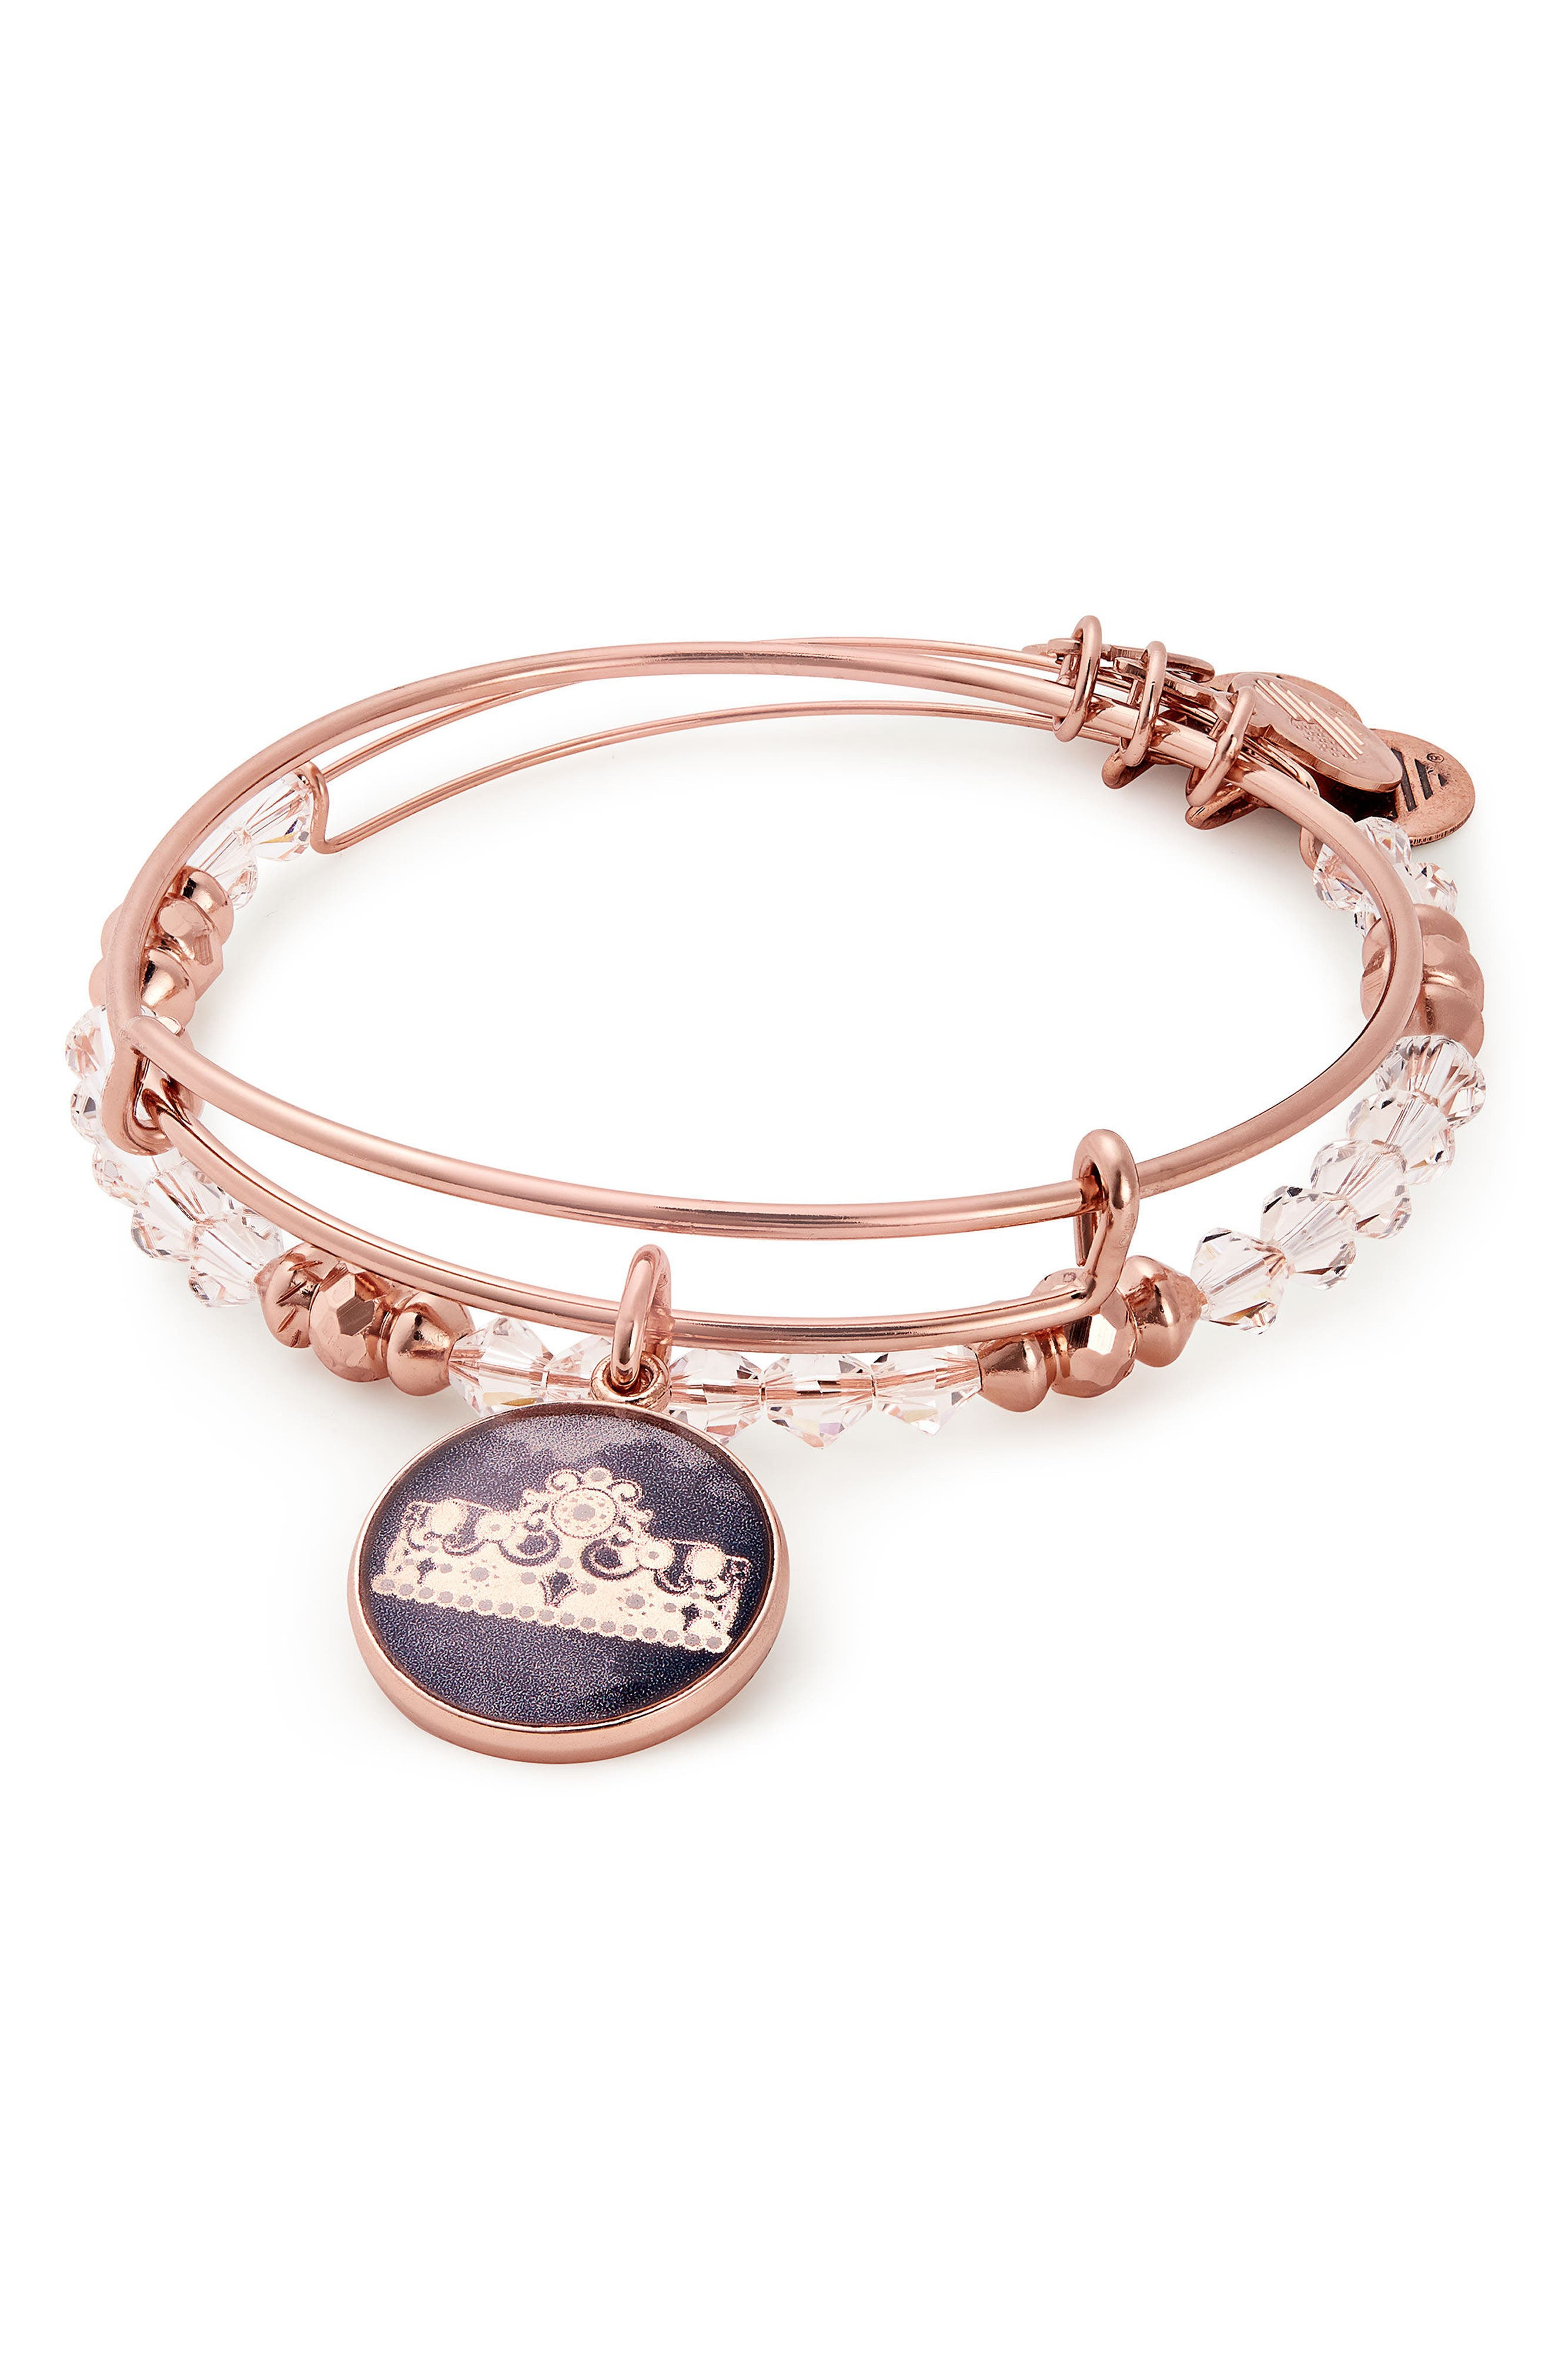 Queen's Crown Set of 2 Adjustable Wire Bangles,                             Alternate thumbnail 4, color,                             689